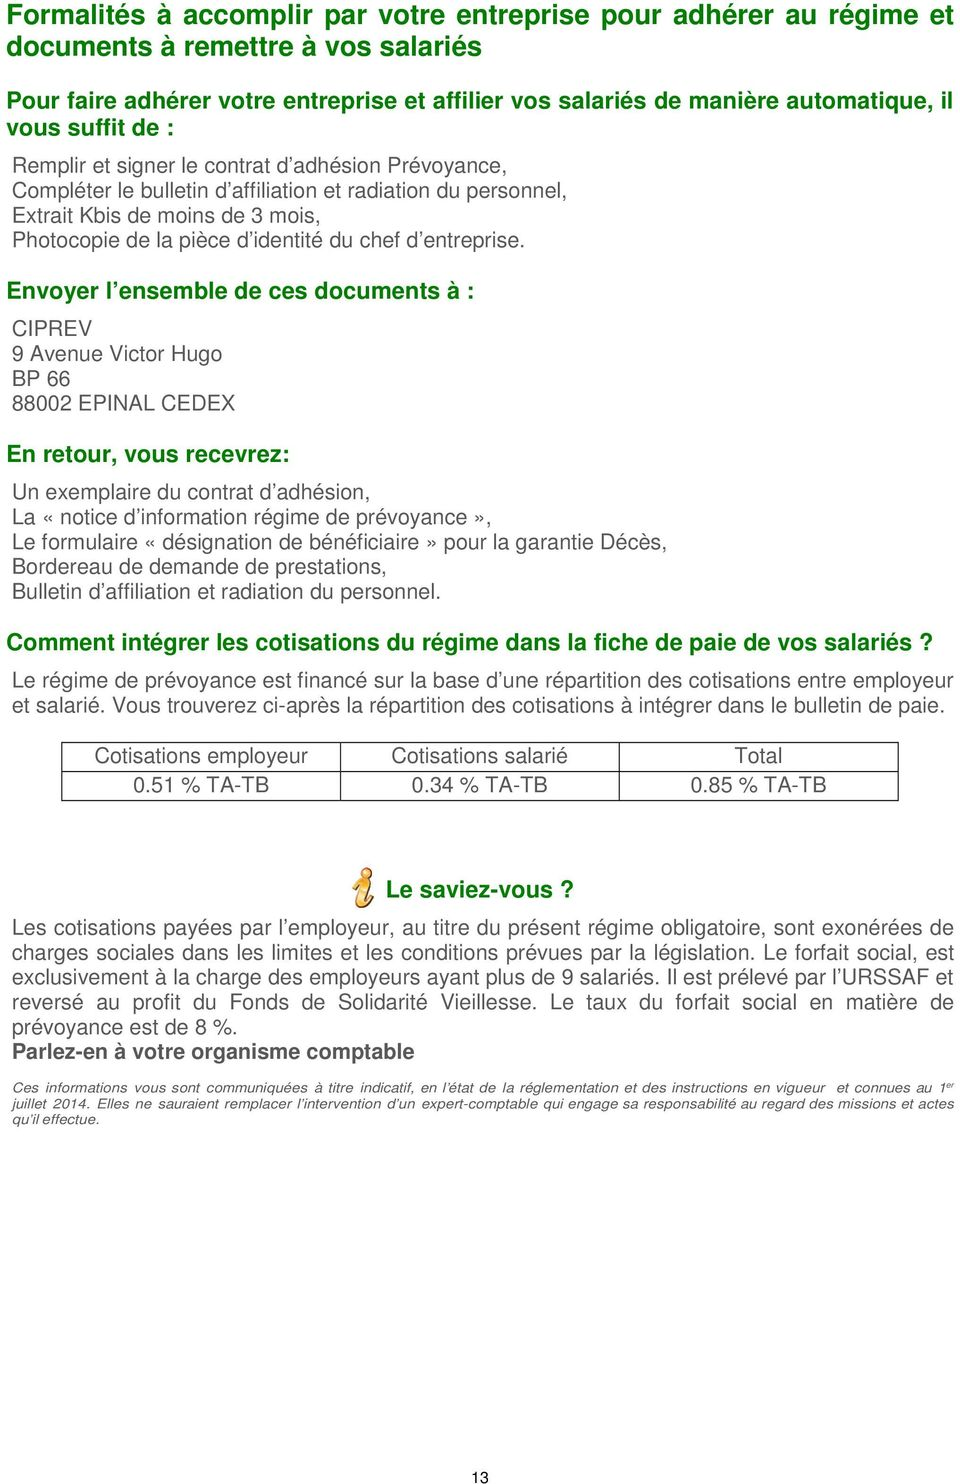 Guide Pratique De L Employeur Pdf